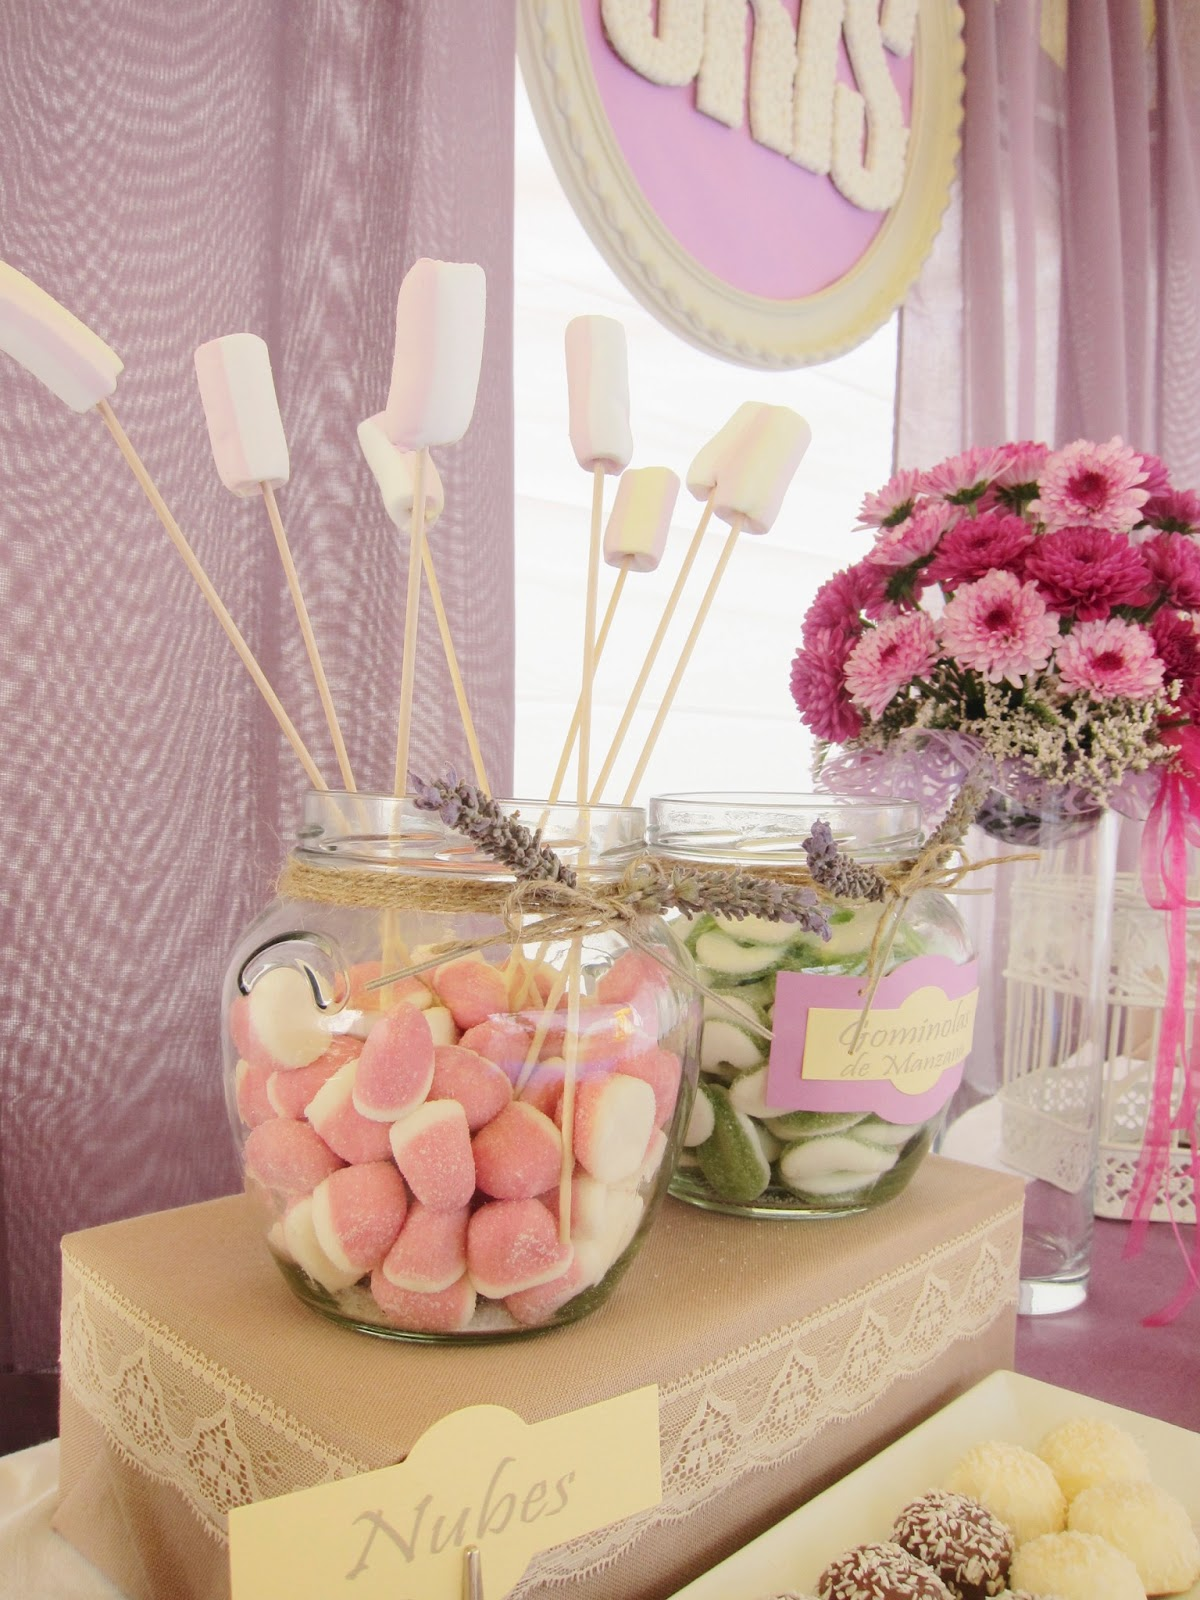 Samikay estudio creativo como decorar un candy bar - Como decorar un cabecero ...